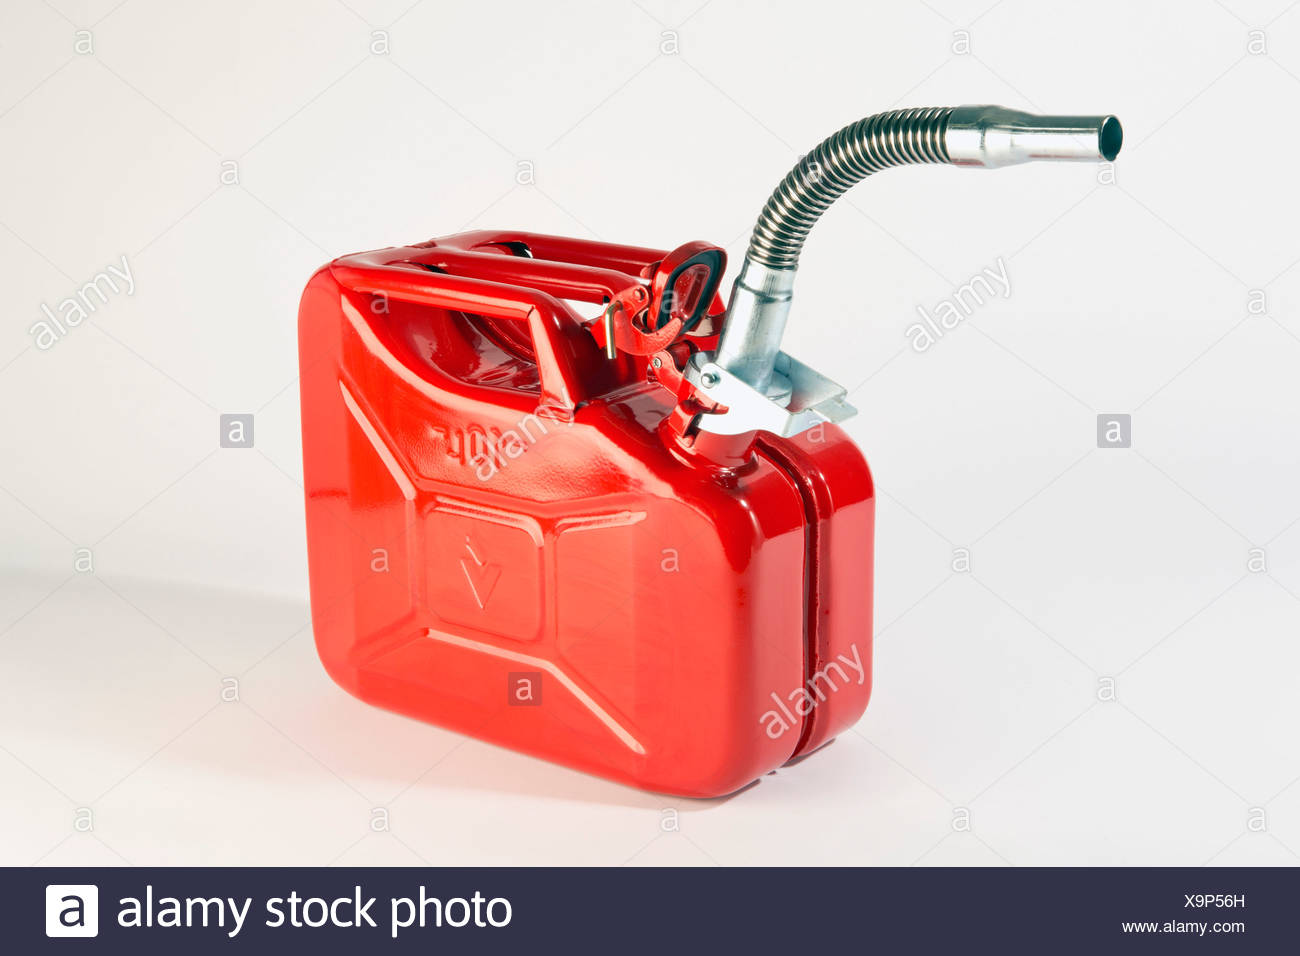 A red metal gasoline can - Stock Image